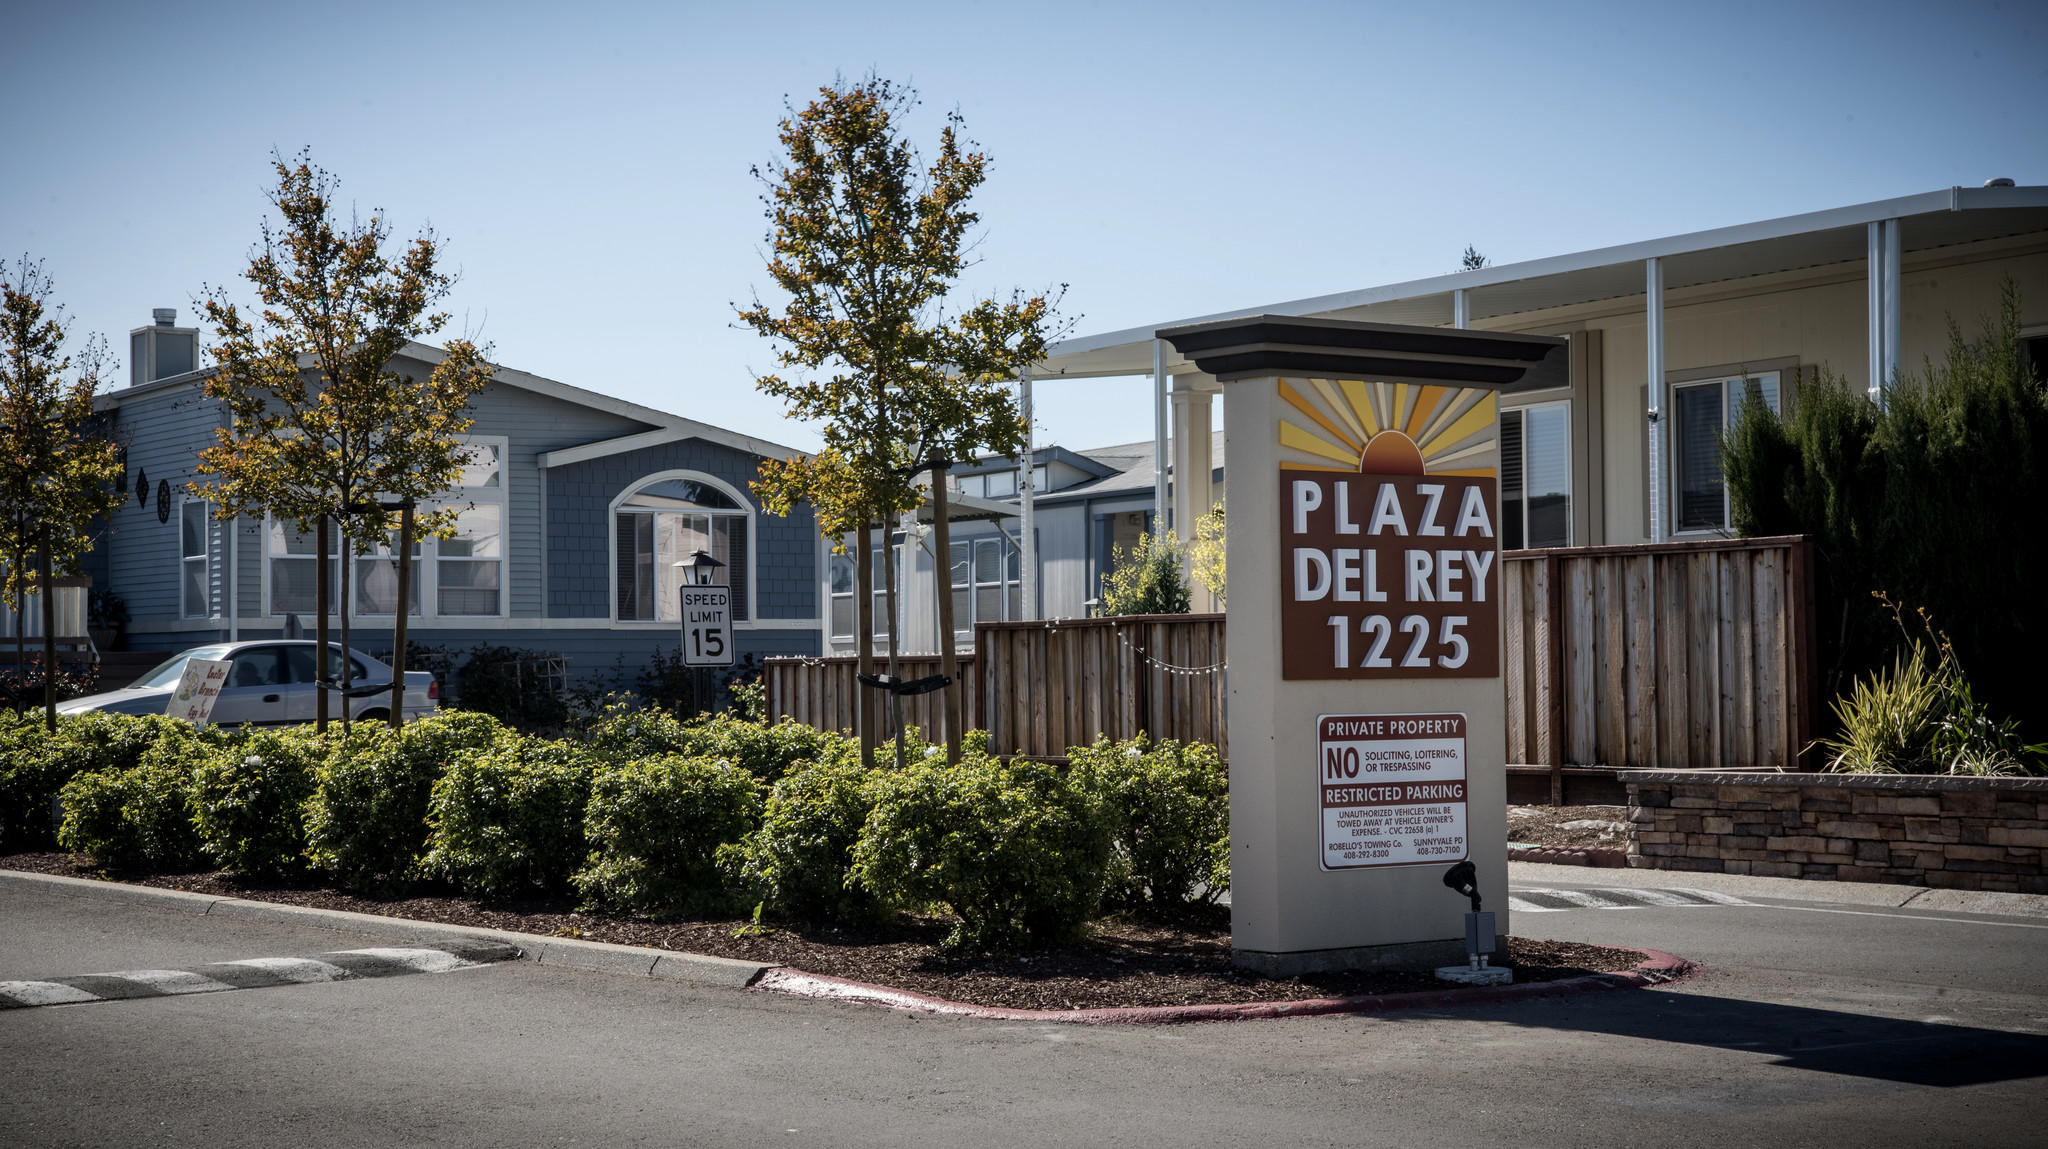 In Silicon Valley, even mobile homes are getting too pricey